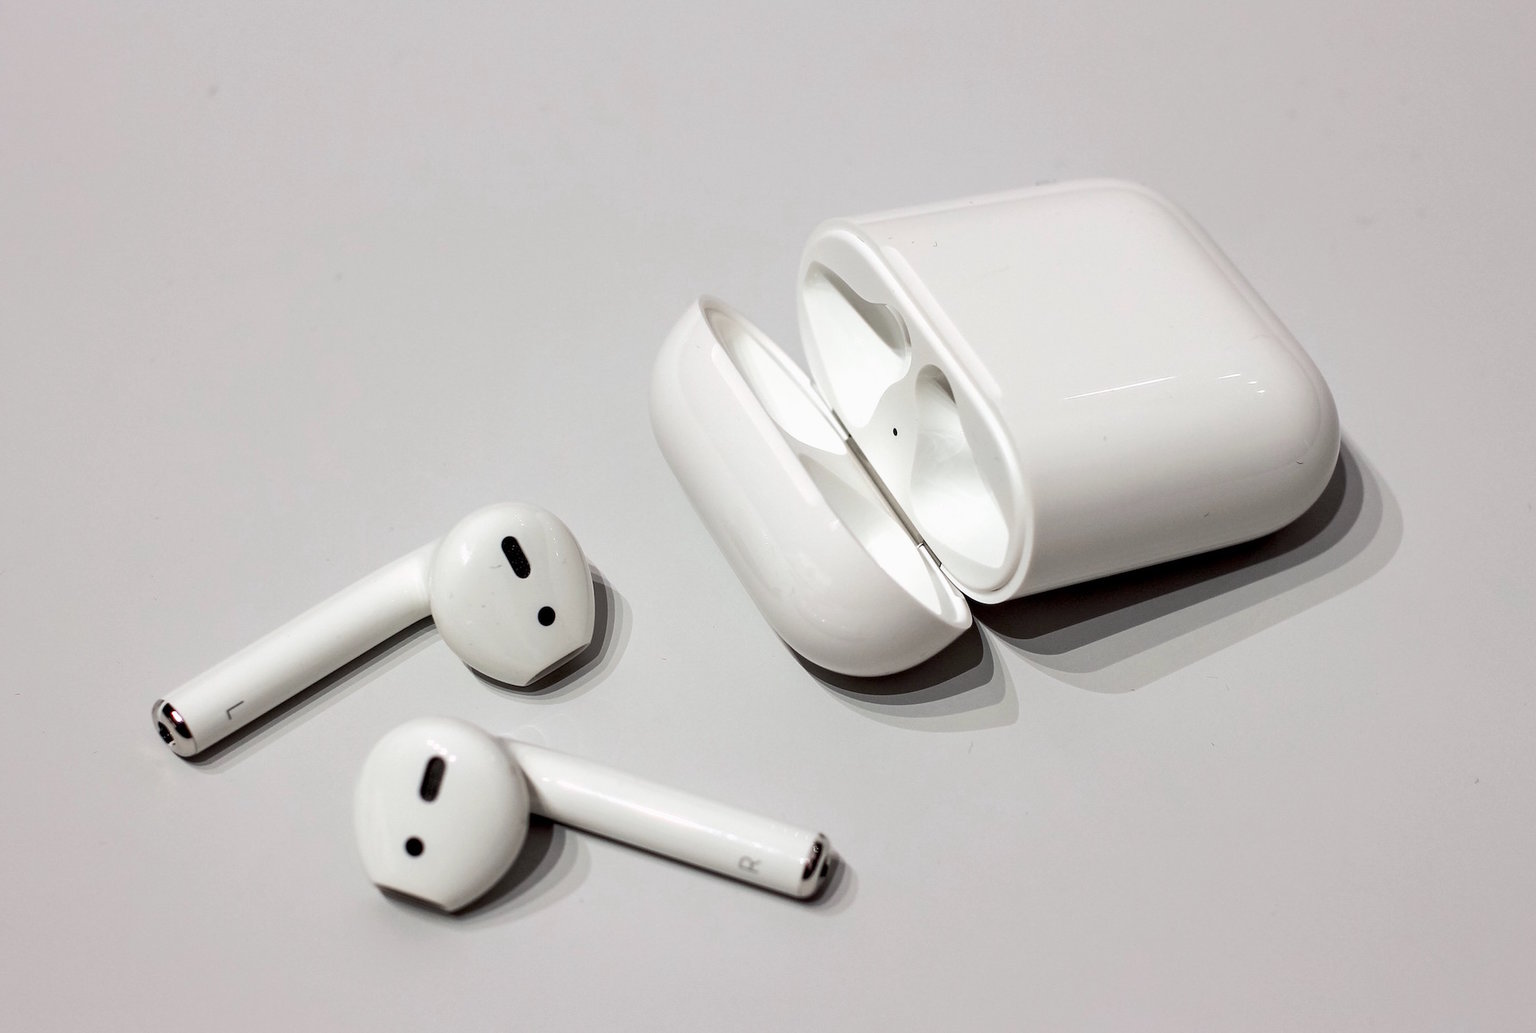 4 reasons why the EarPods are still better AirPods